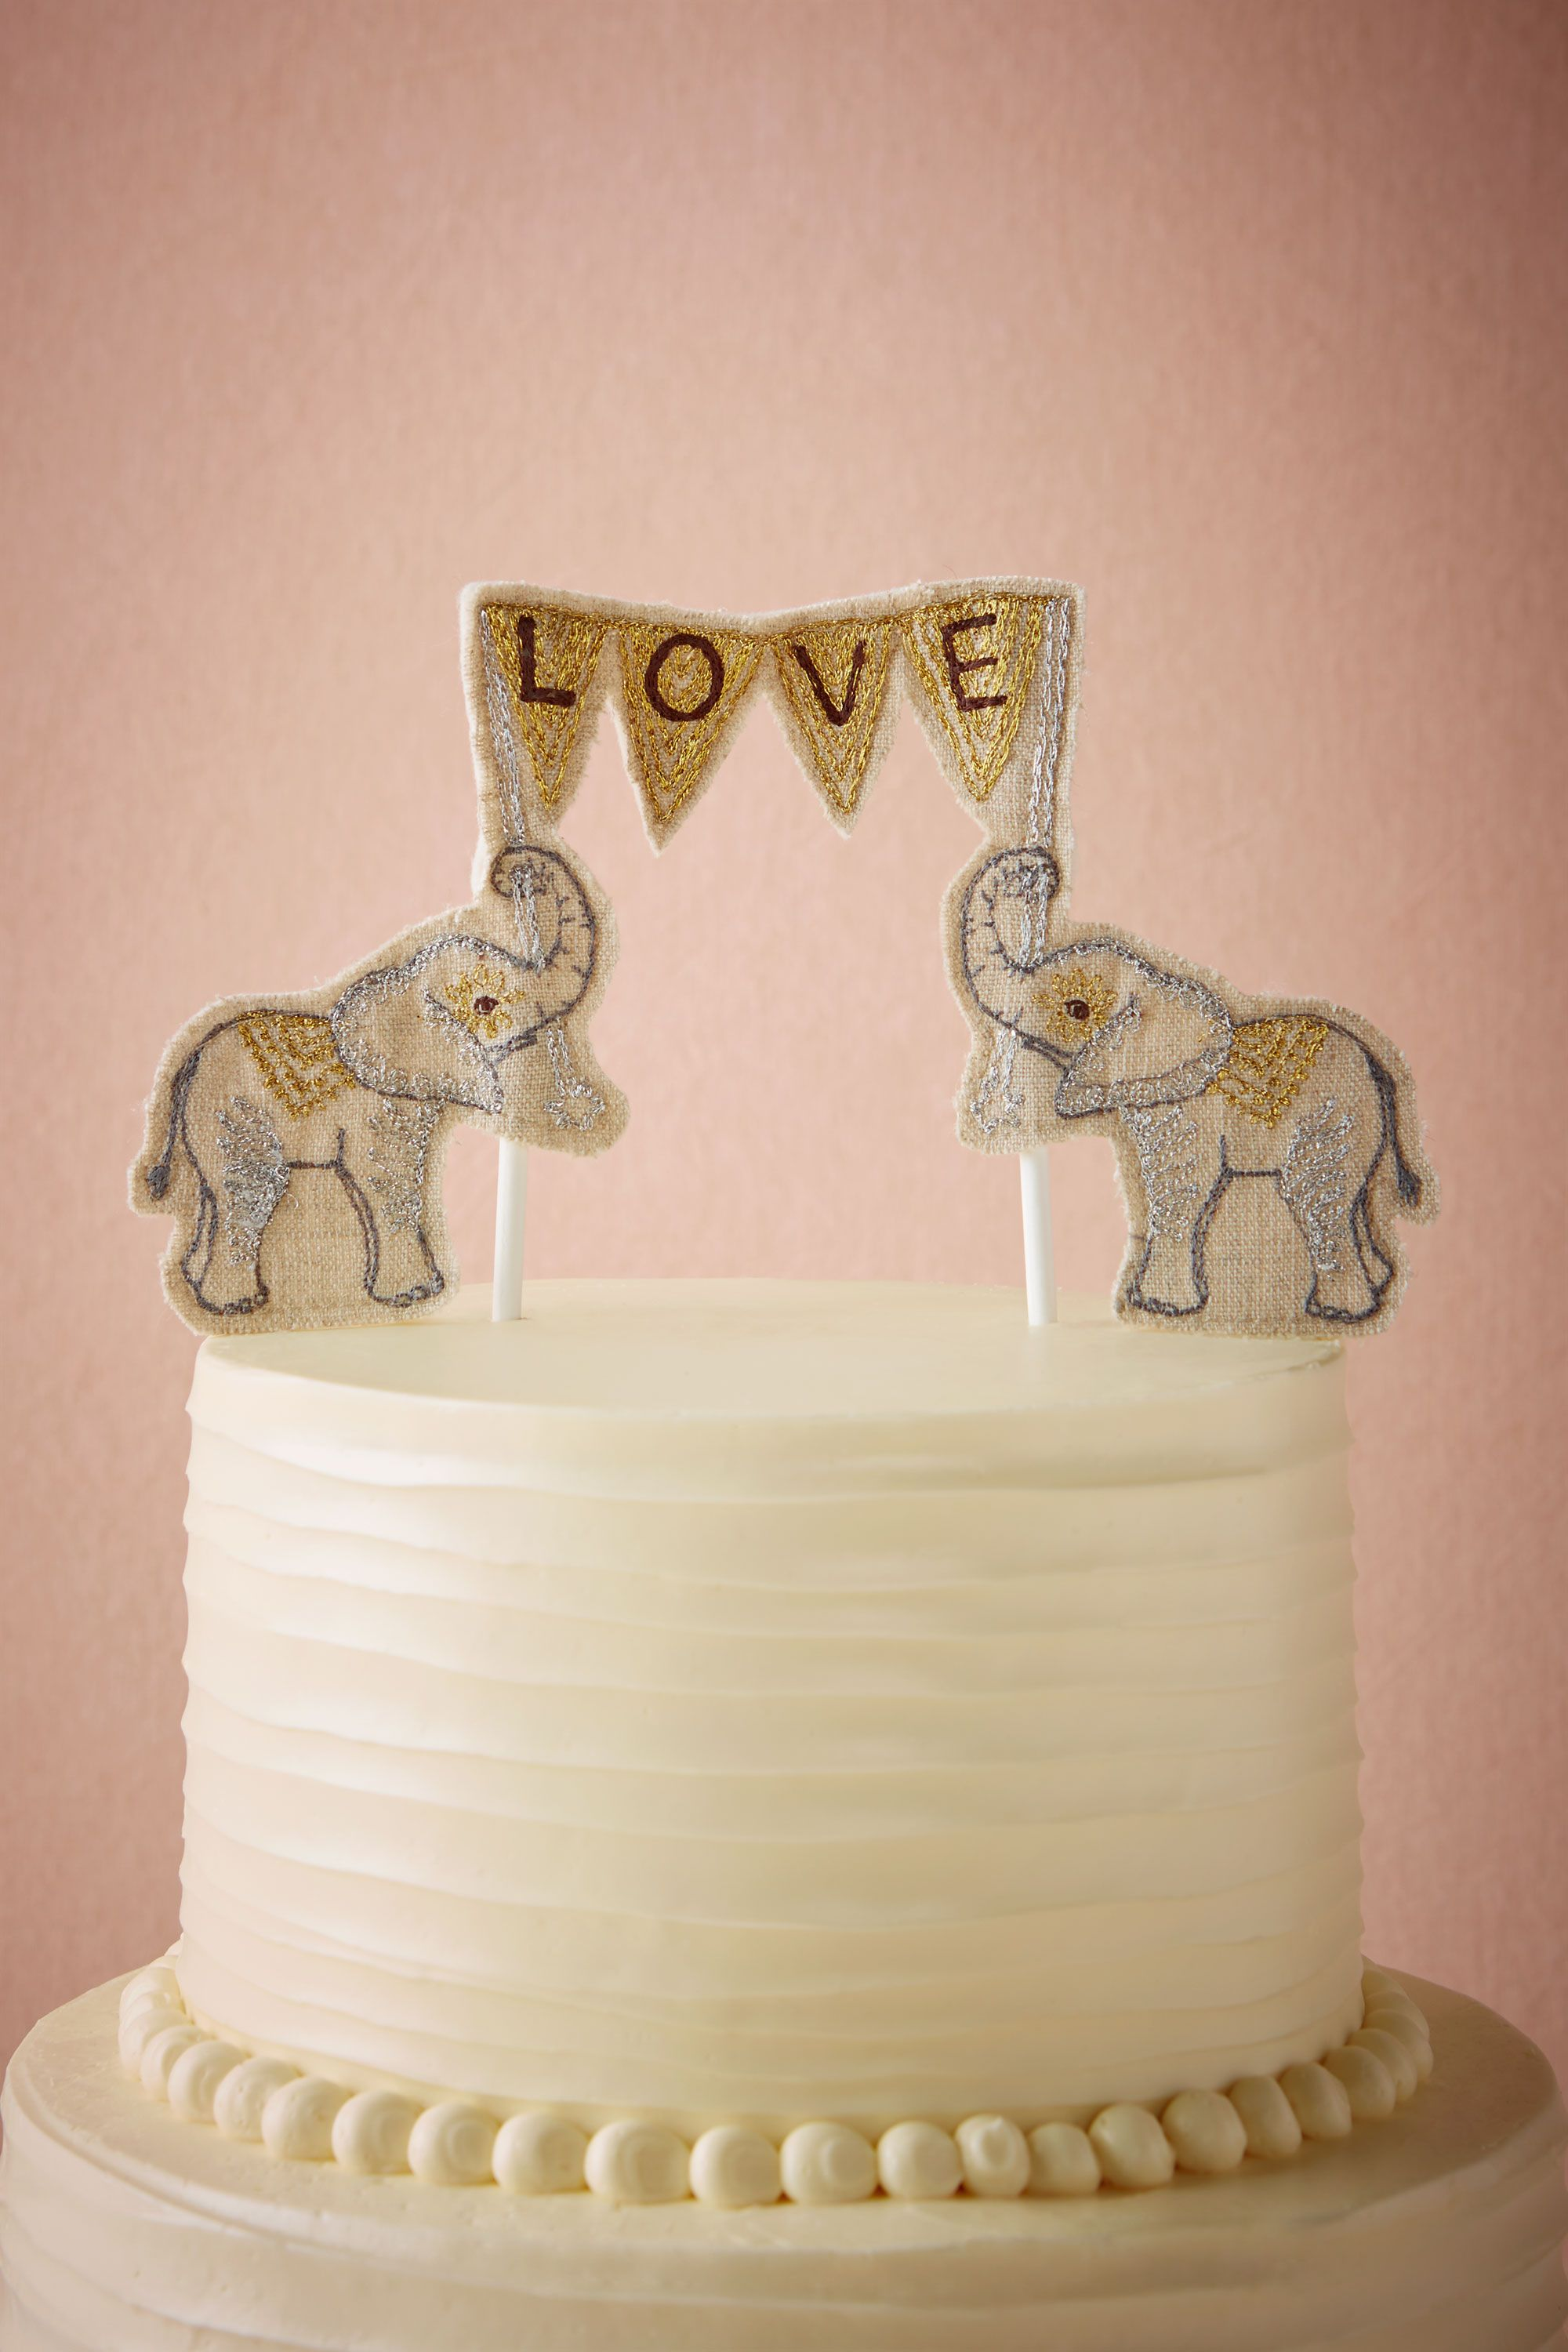 Lovesome Elephants Cake Topper